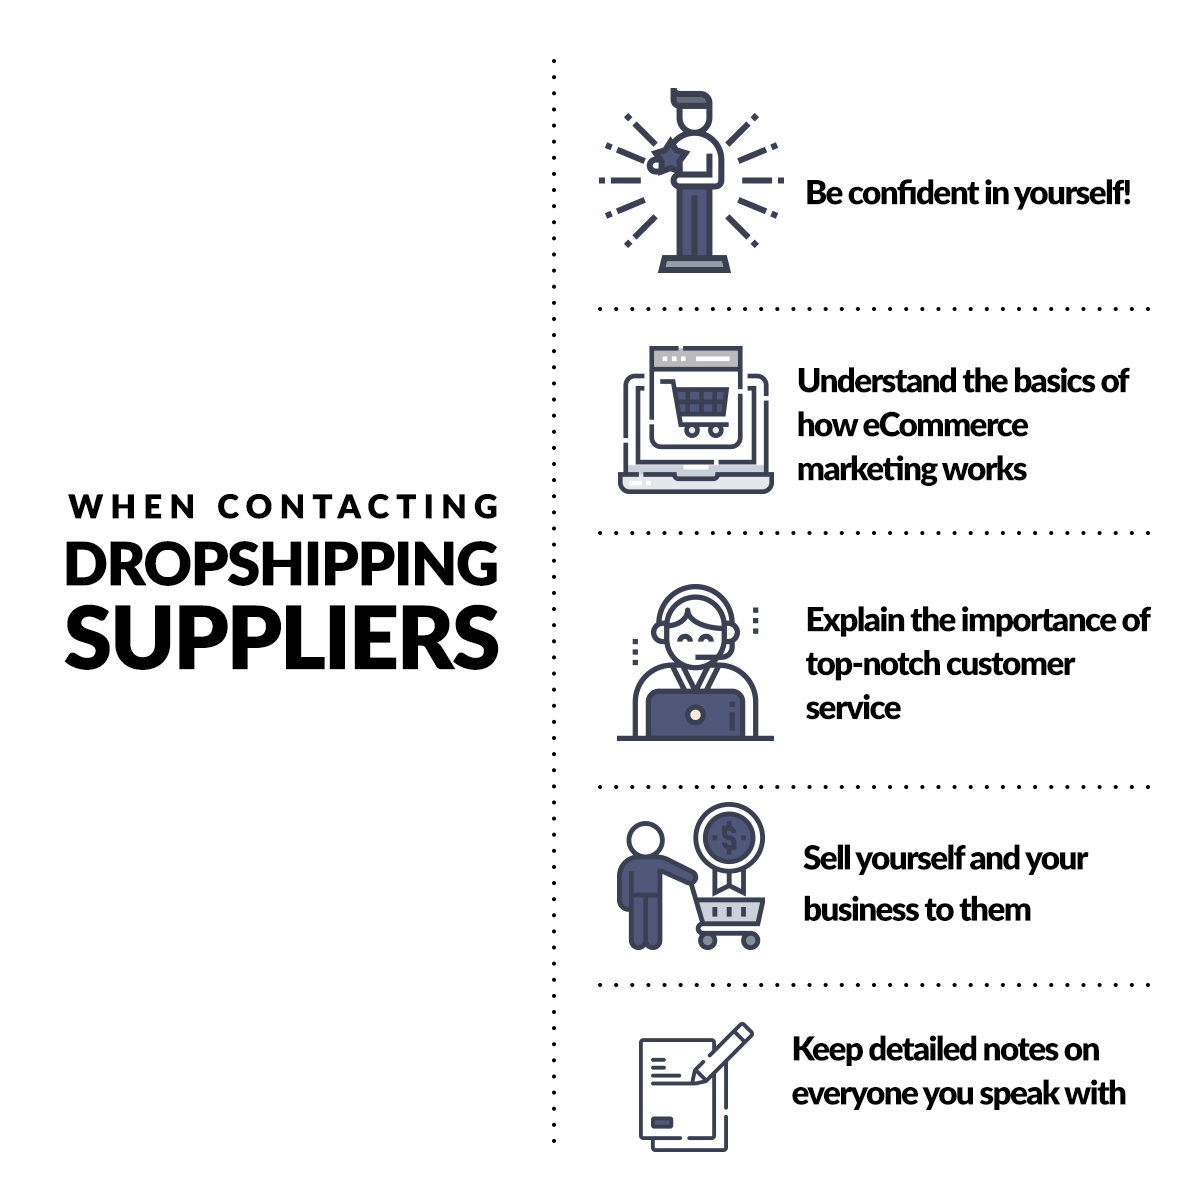 2020 dropshipping suppliers